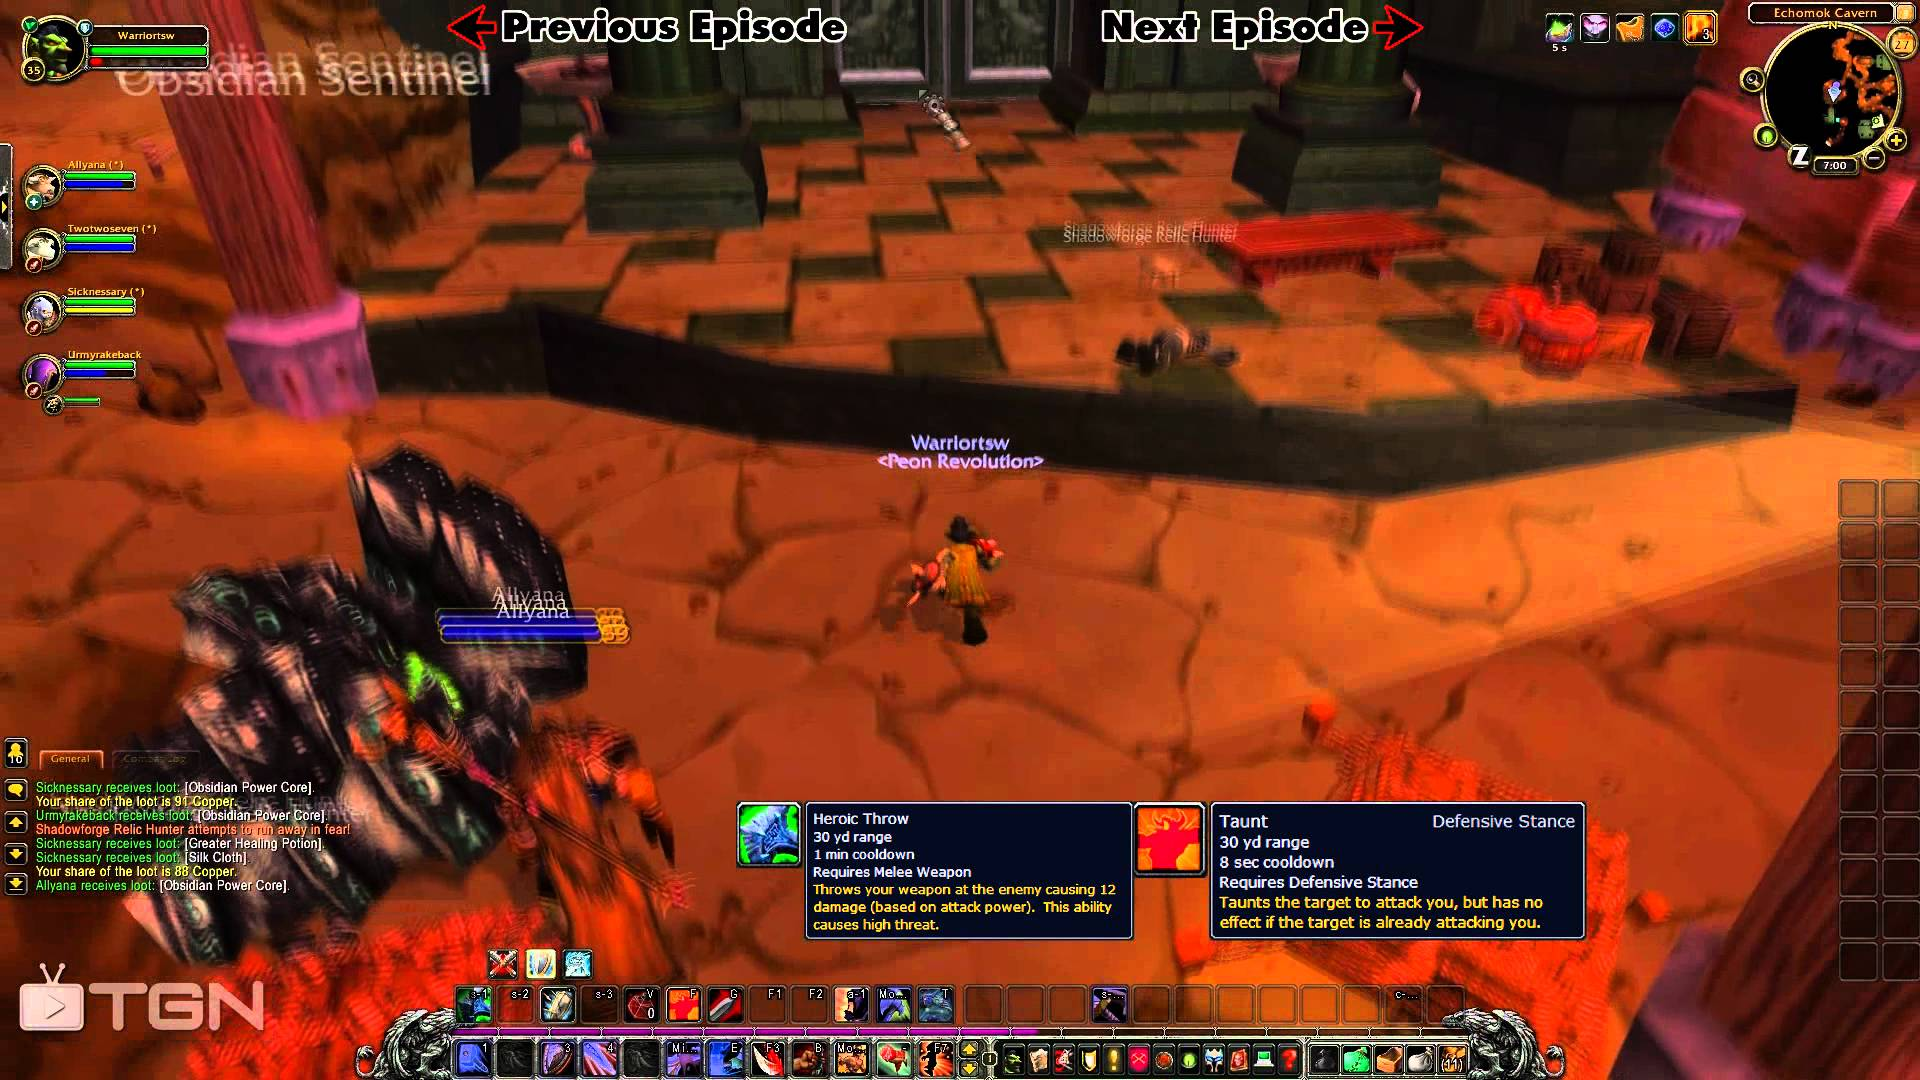 WoW: Addons and you!   Ruin Gaming